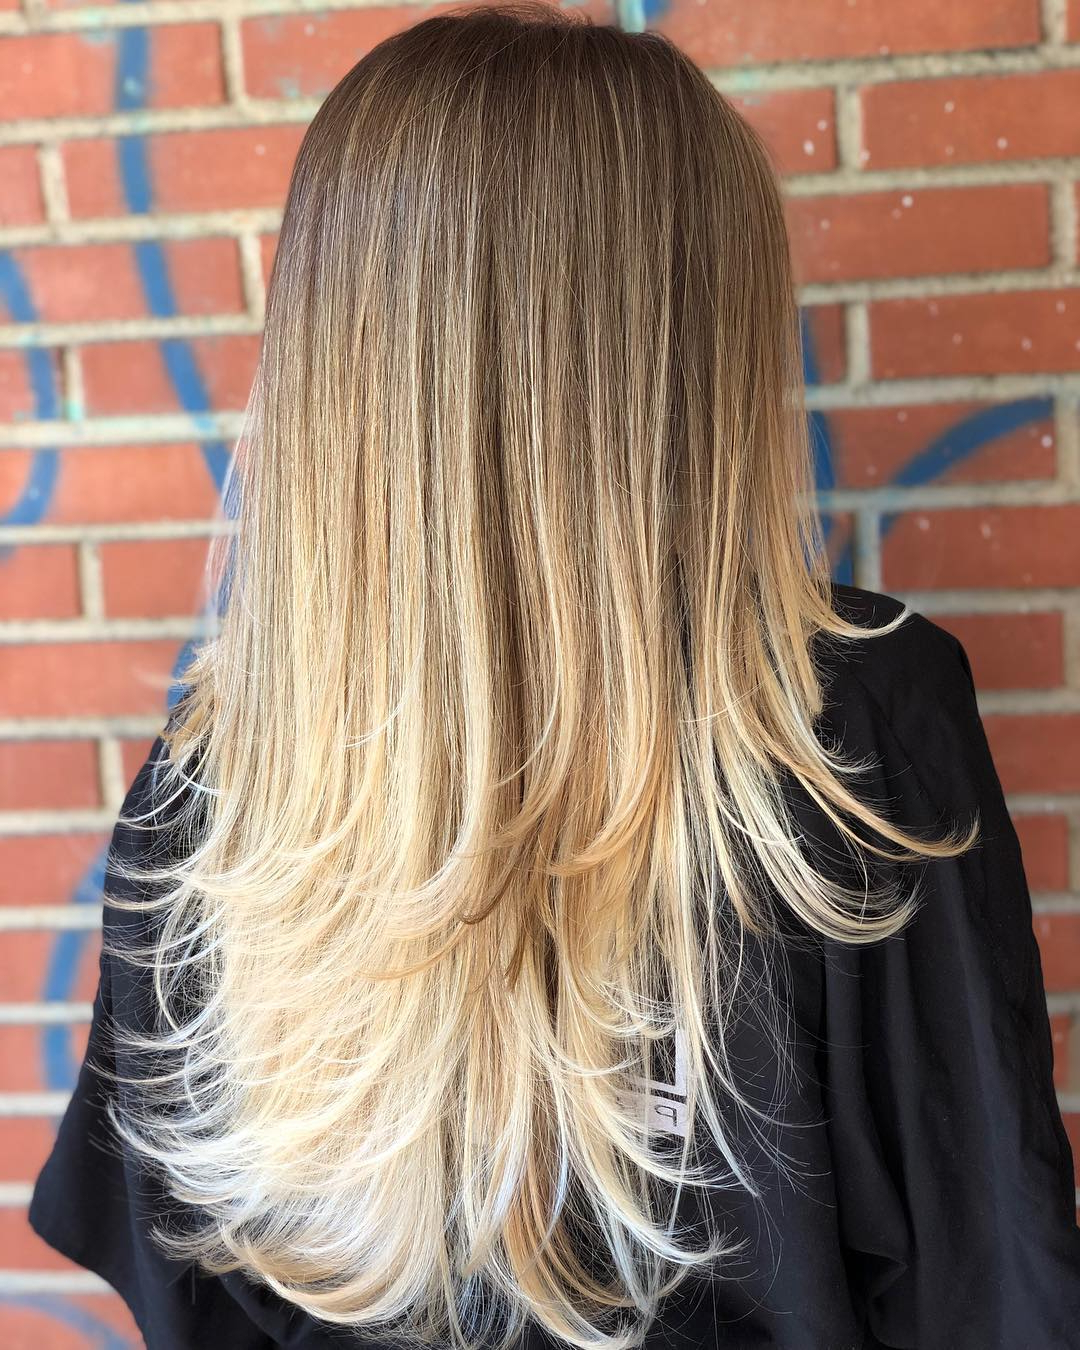 Bombshell Long Hairstyles For Women To Keep Up With Trends Intended For Famous Blondie Bombshell Long Shag Hairstyles (View 10 of 20)